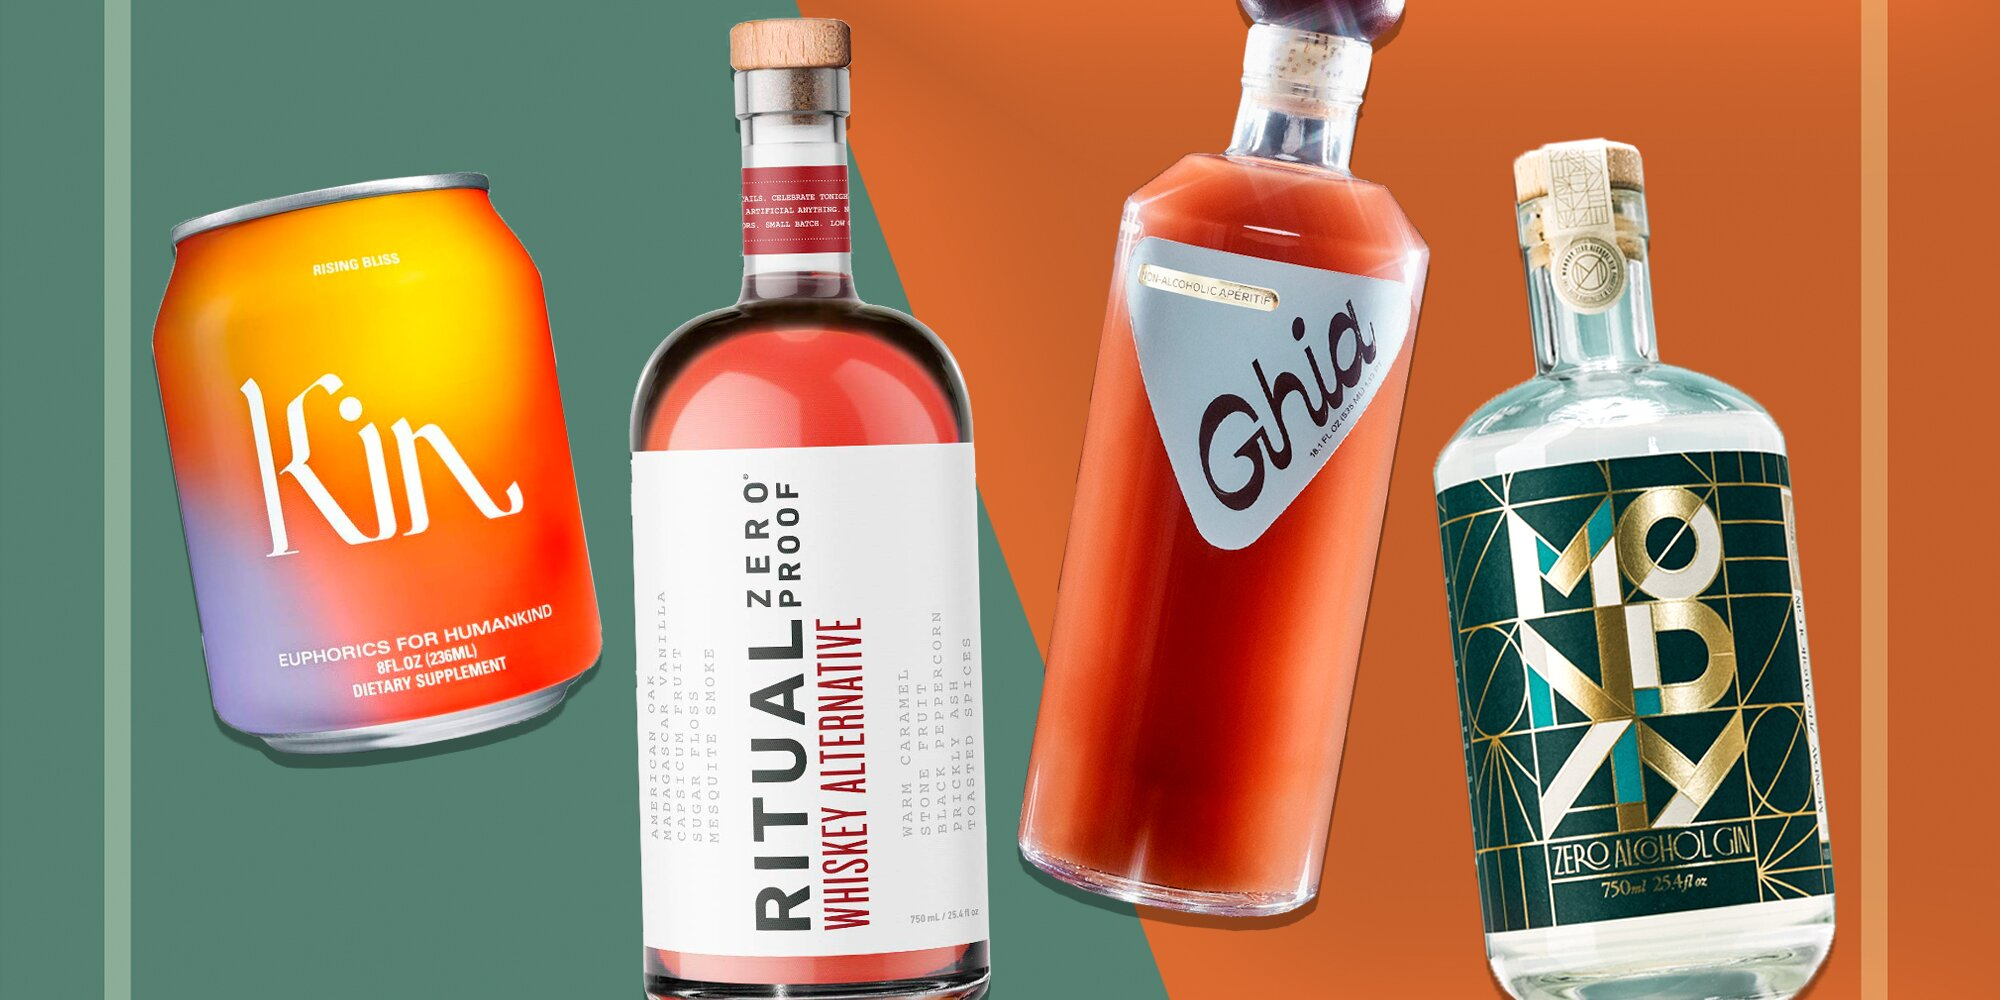 Shoppers Say These Non-Alcoholic Spirits and Canned Cocktails Are 'Indistinguishable' From the Real Thing